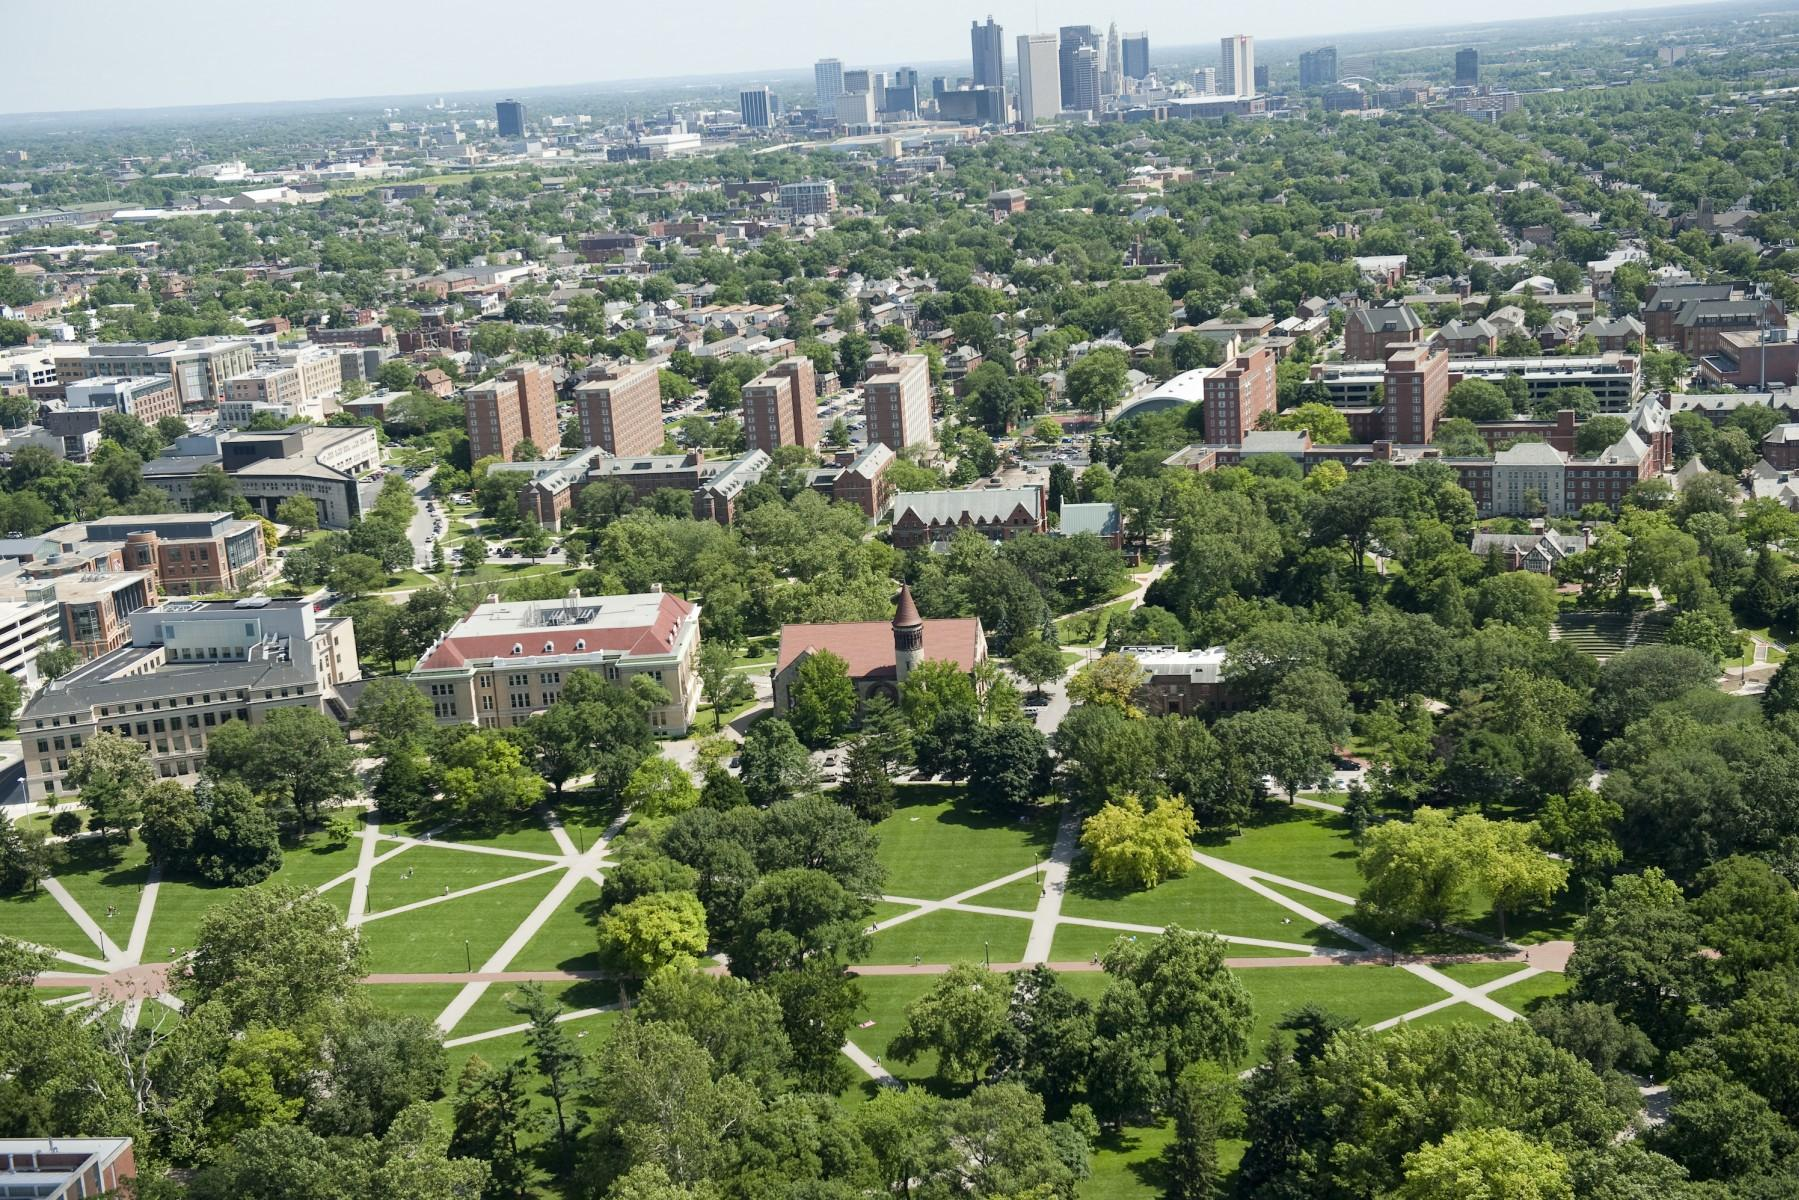 Photo of campus and the city